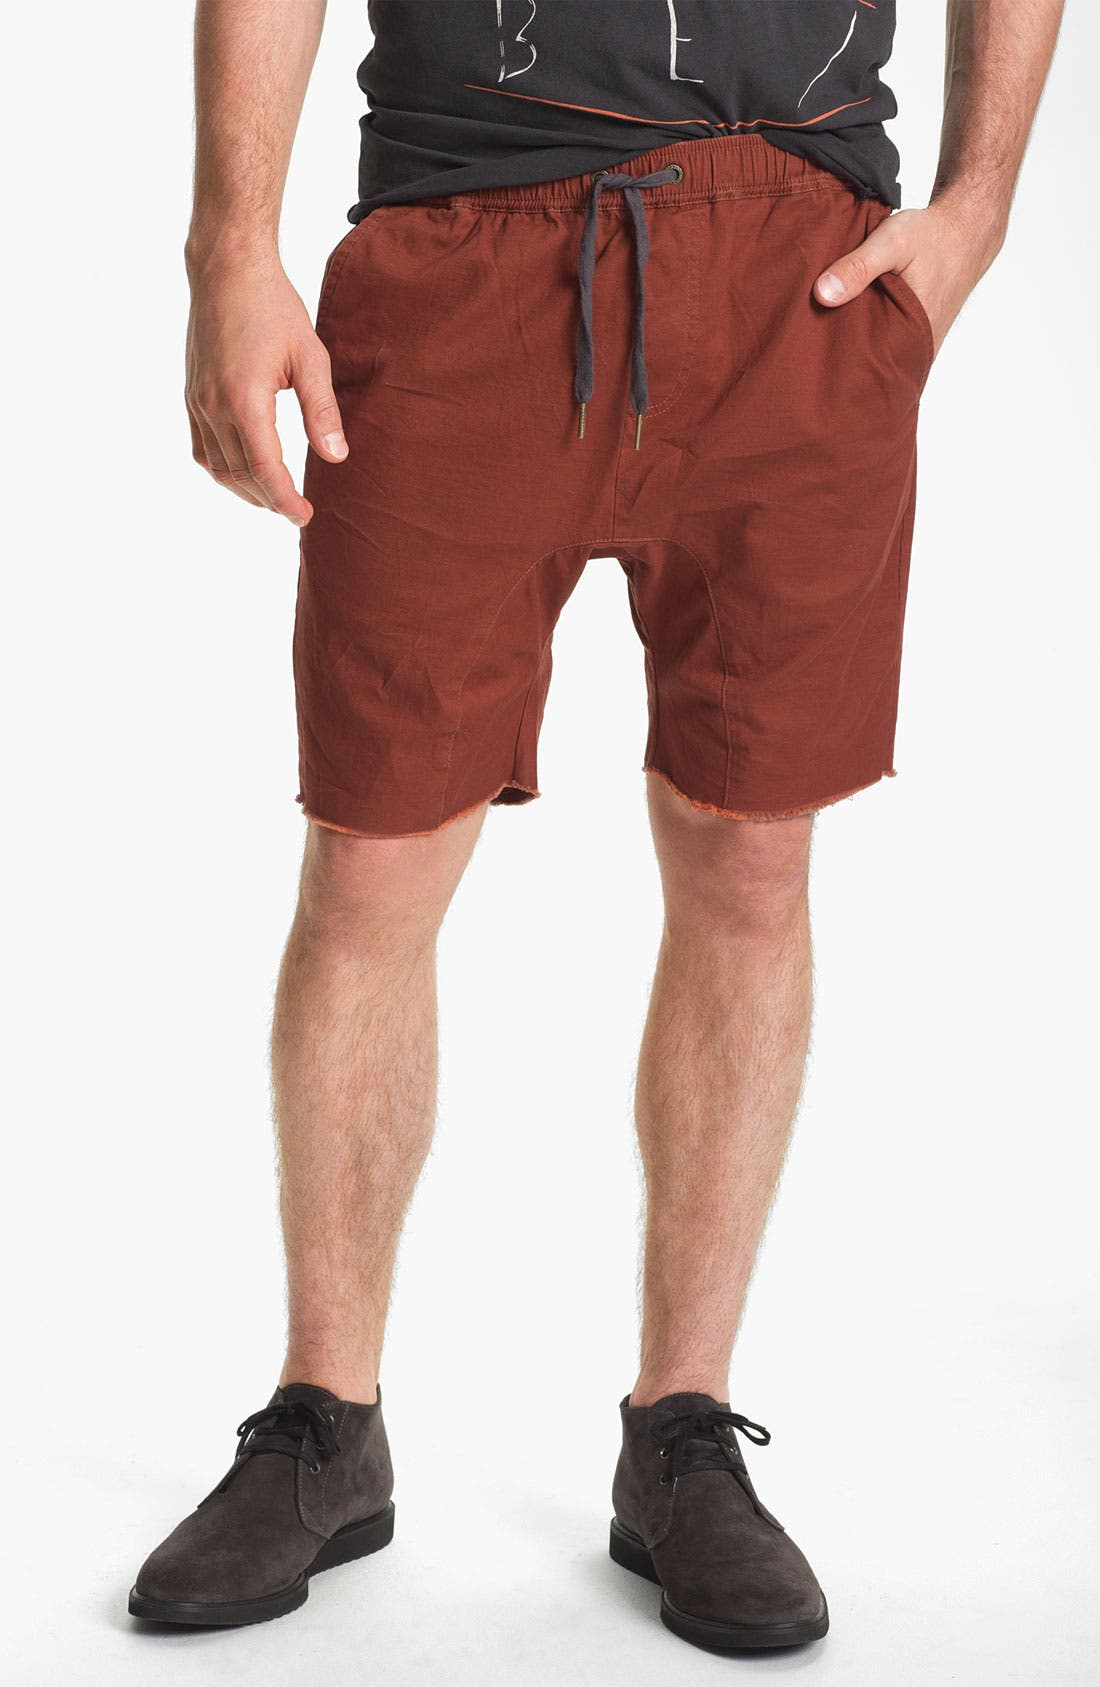 Alternate Image 1 Selected - Zanerobe 'Sureshot' Chino Shorts